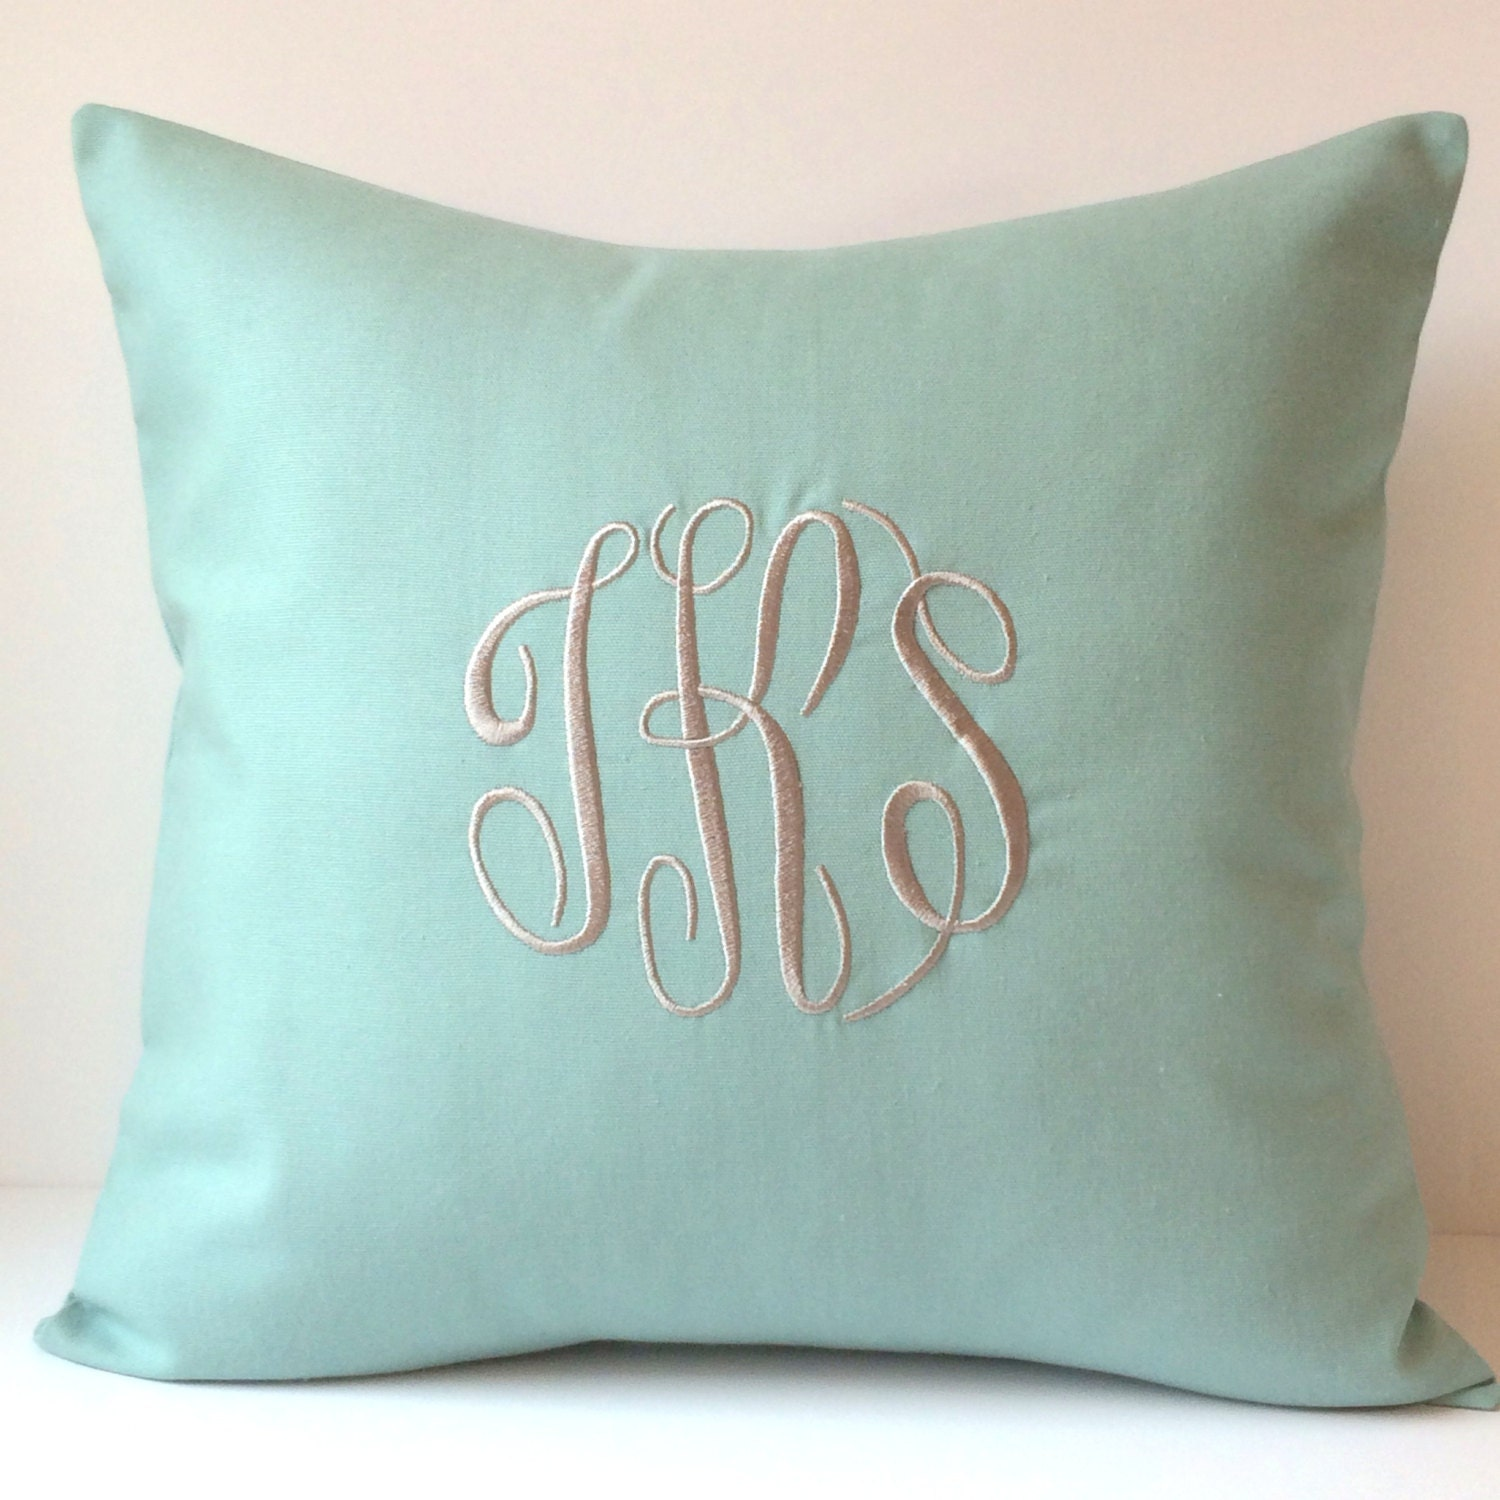 How To Make A Monogram Throw Pillow : Monogrammed Pillows. 18 x 18 Throw Pillow Cover. Personalized